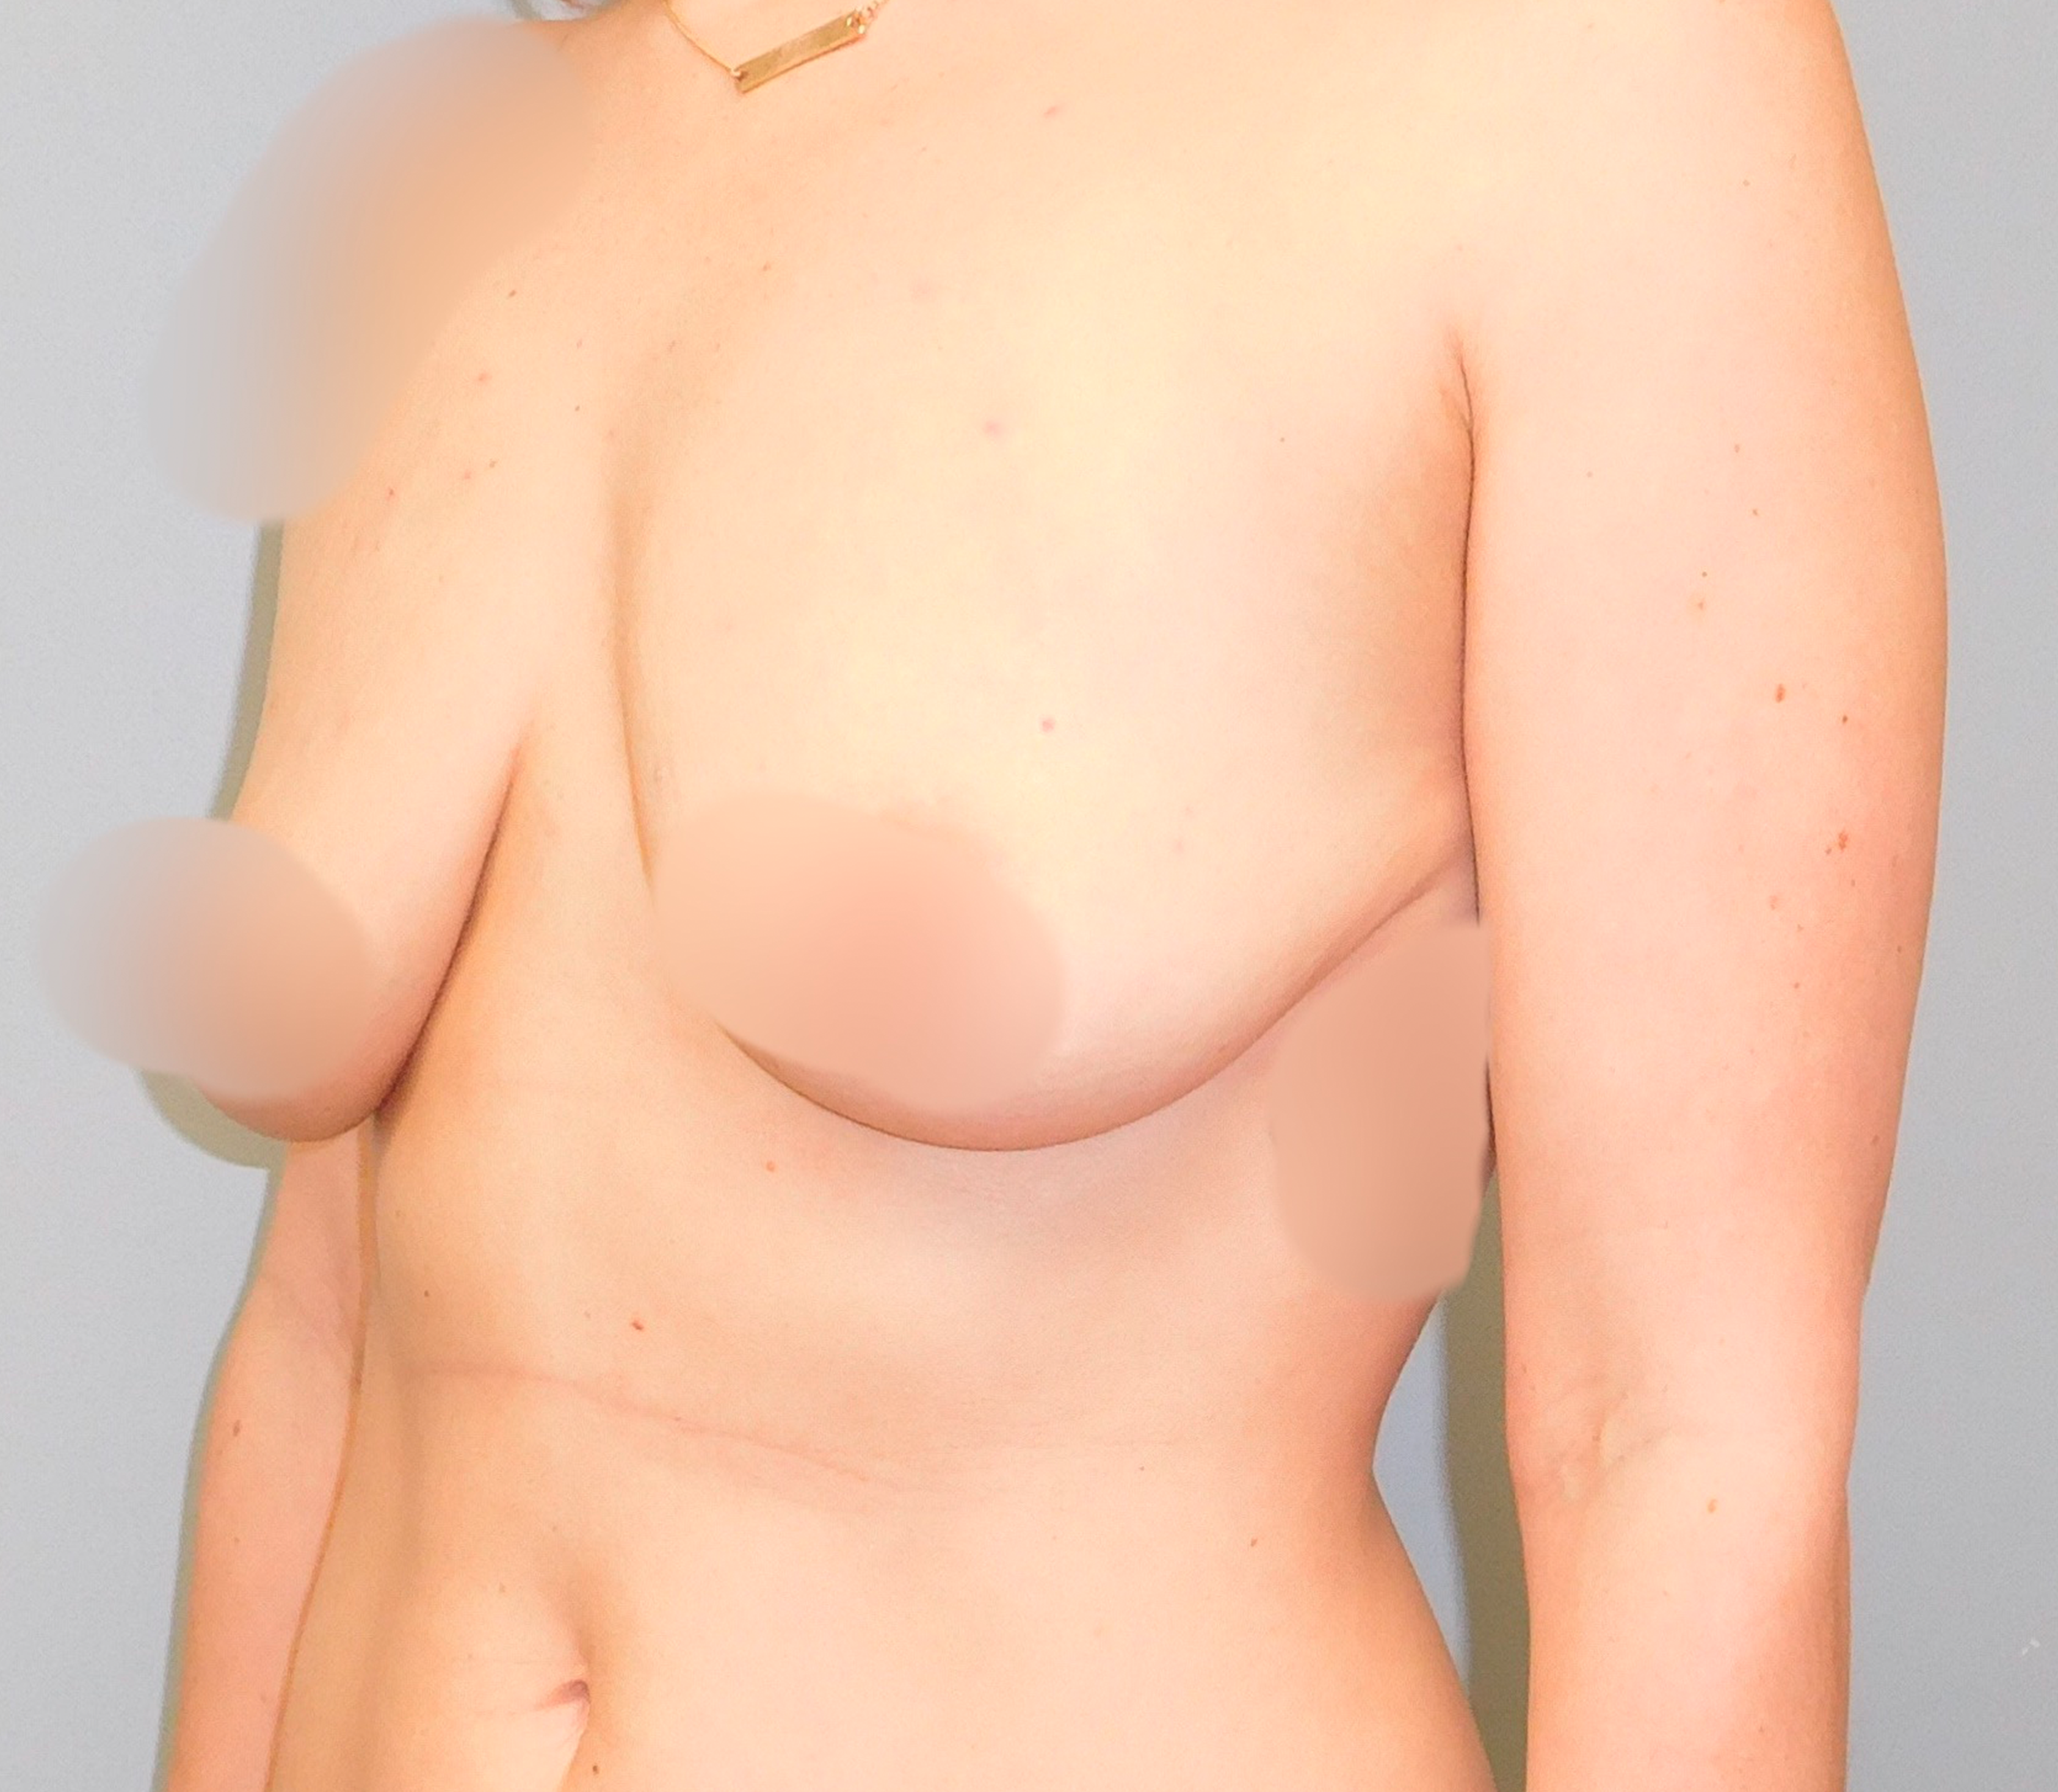 Before photo of breast augmentation performed at SOMC Plastic Surgery